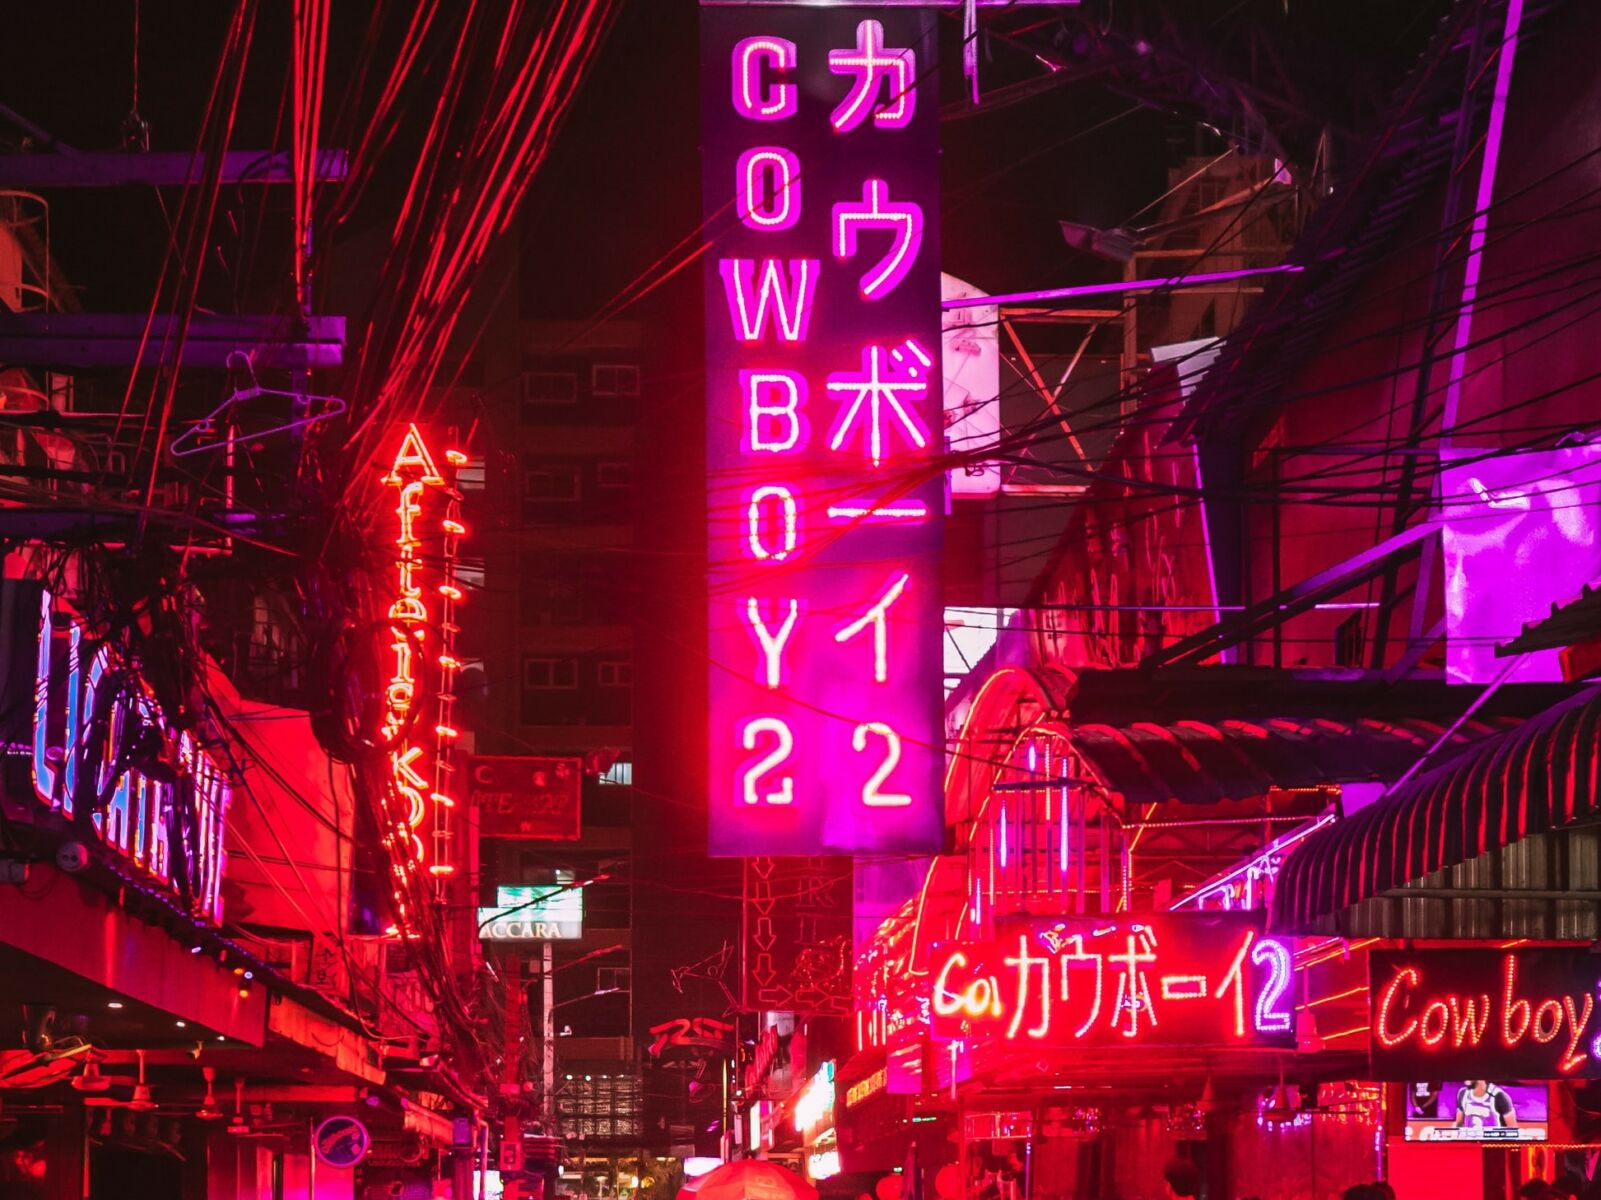 Soi Cowboy bar owner says the business has survived the pandemic, but revenue has fallen by 70% | Thaiger